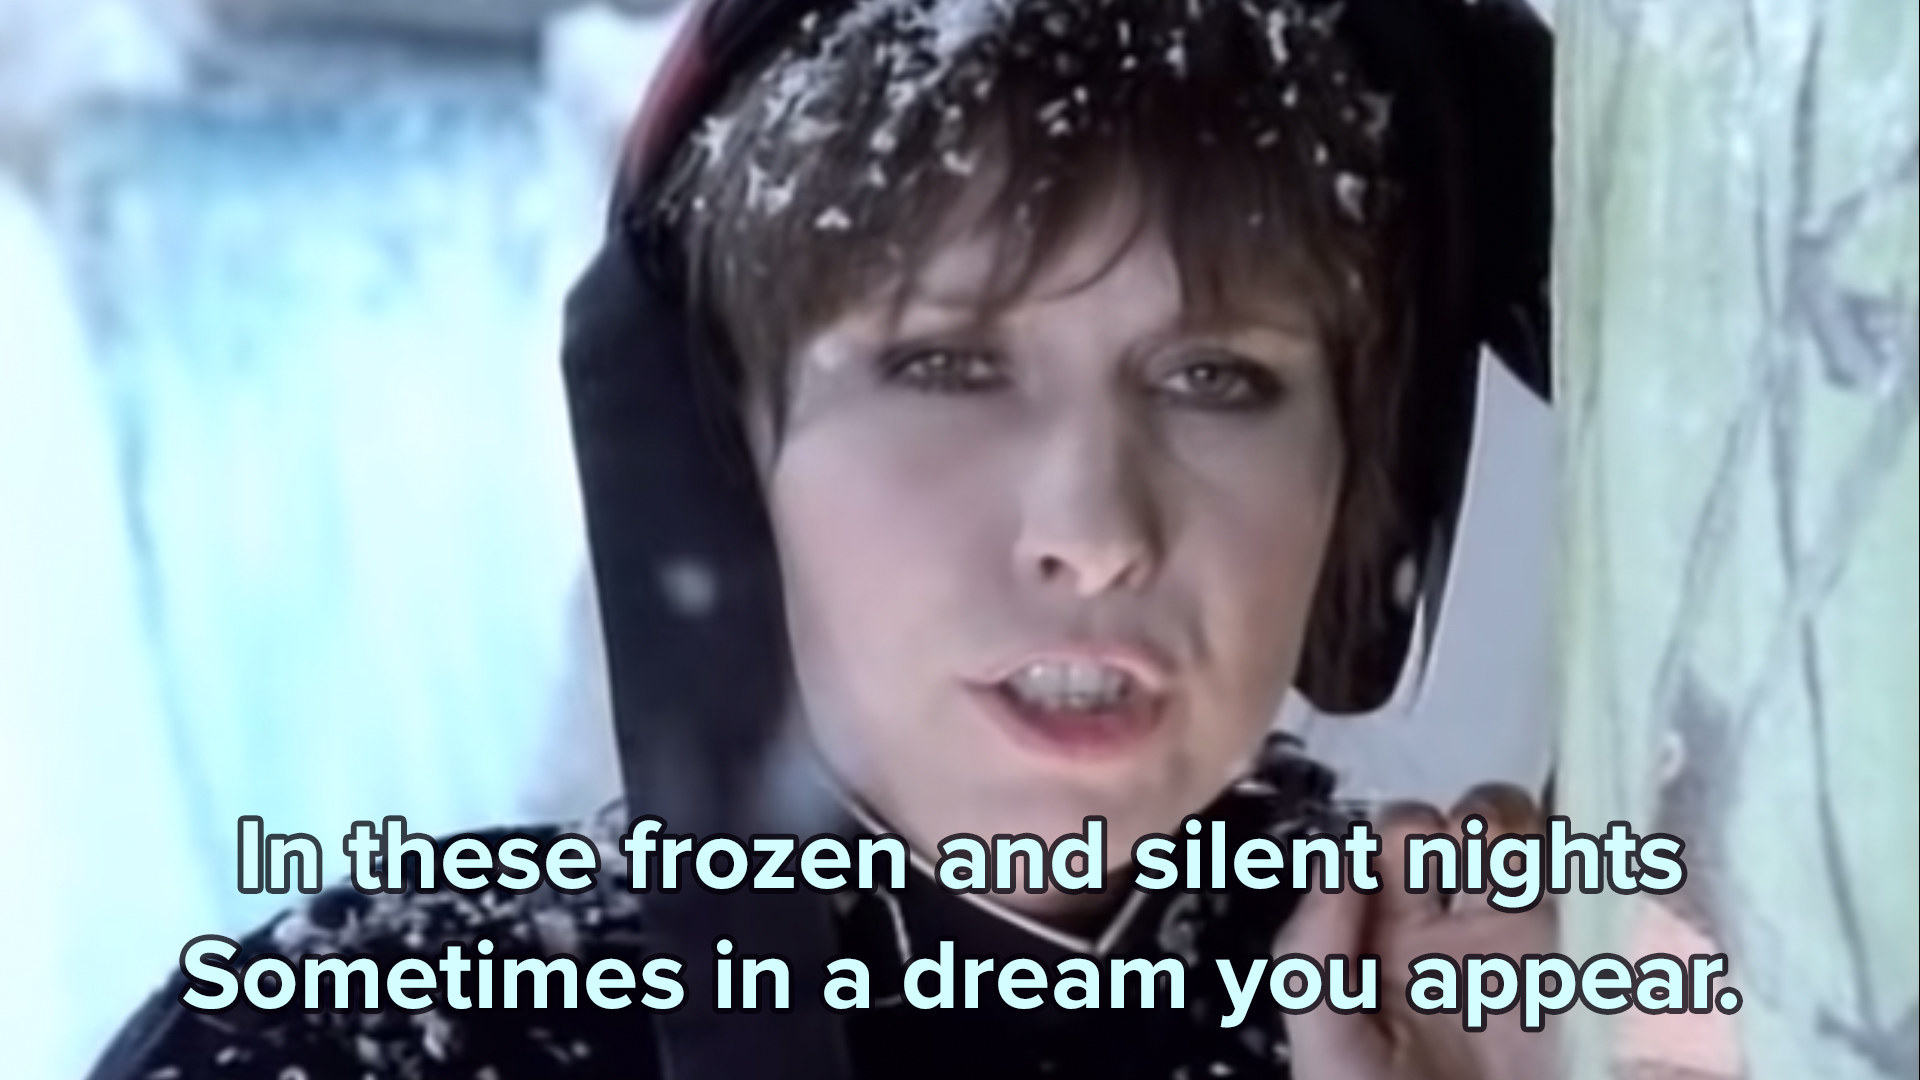 Chrissie Hynde of the Pretenders leans against a tree in snowy apparell in her music video for 2000 miles with the lyrics in those frozen and silent nights sometimes in a dream you appear on top